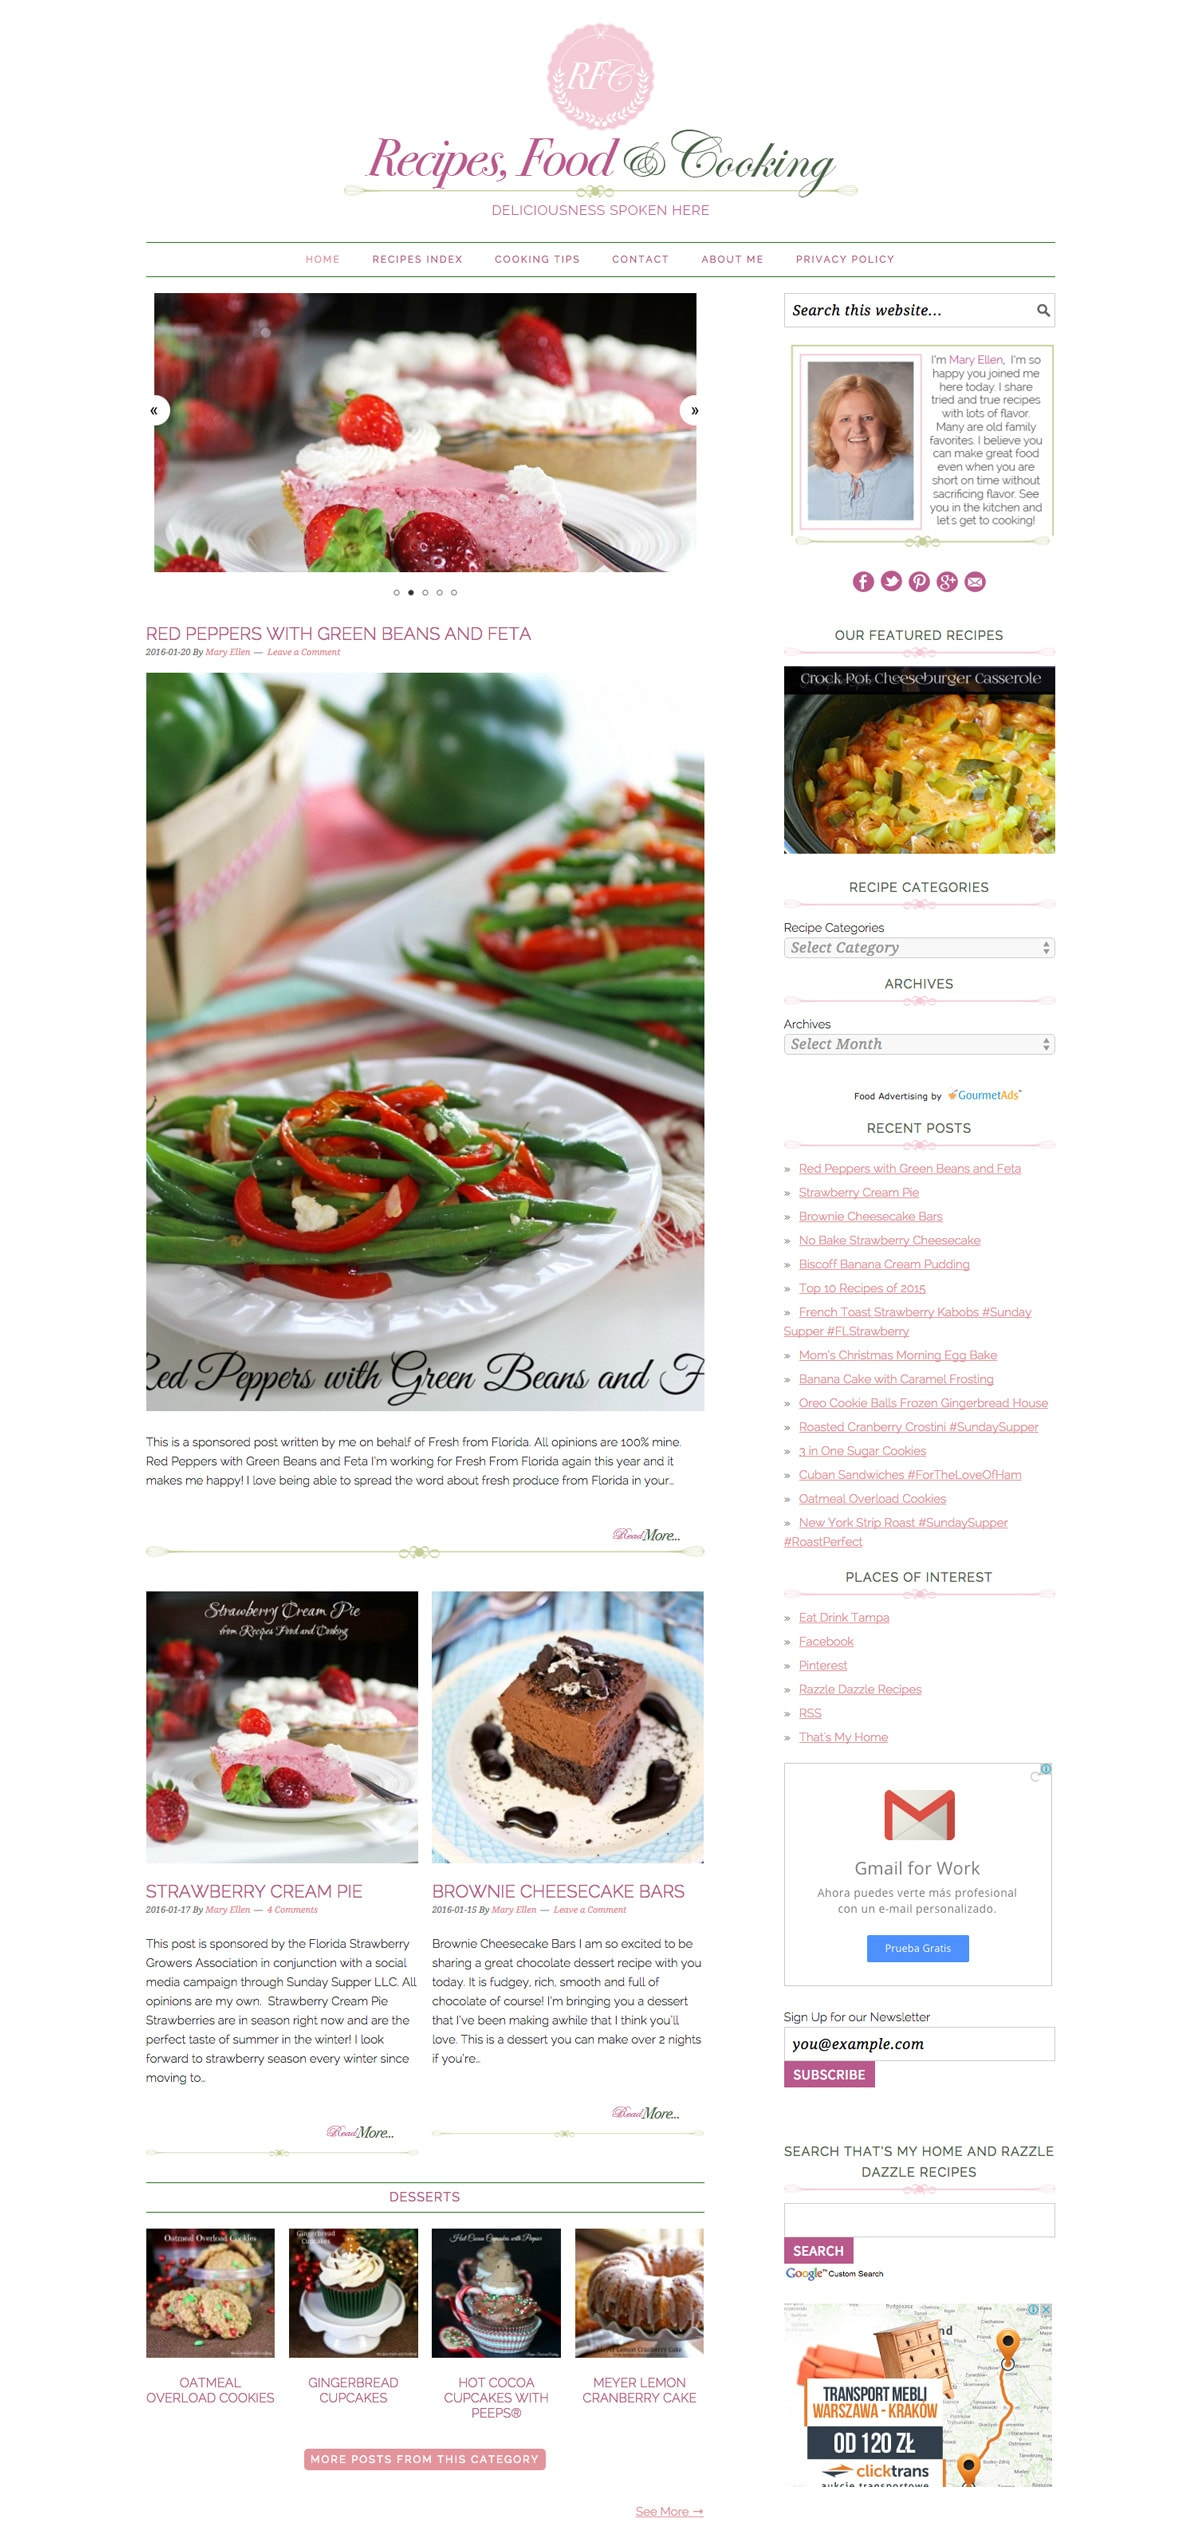 Recipes-Food-and-Cooking-BLOG